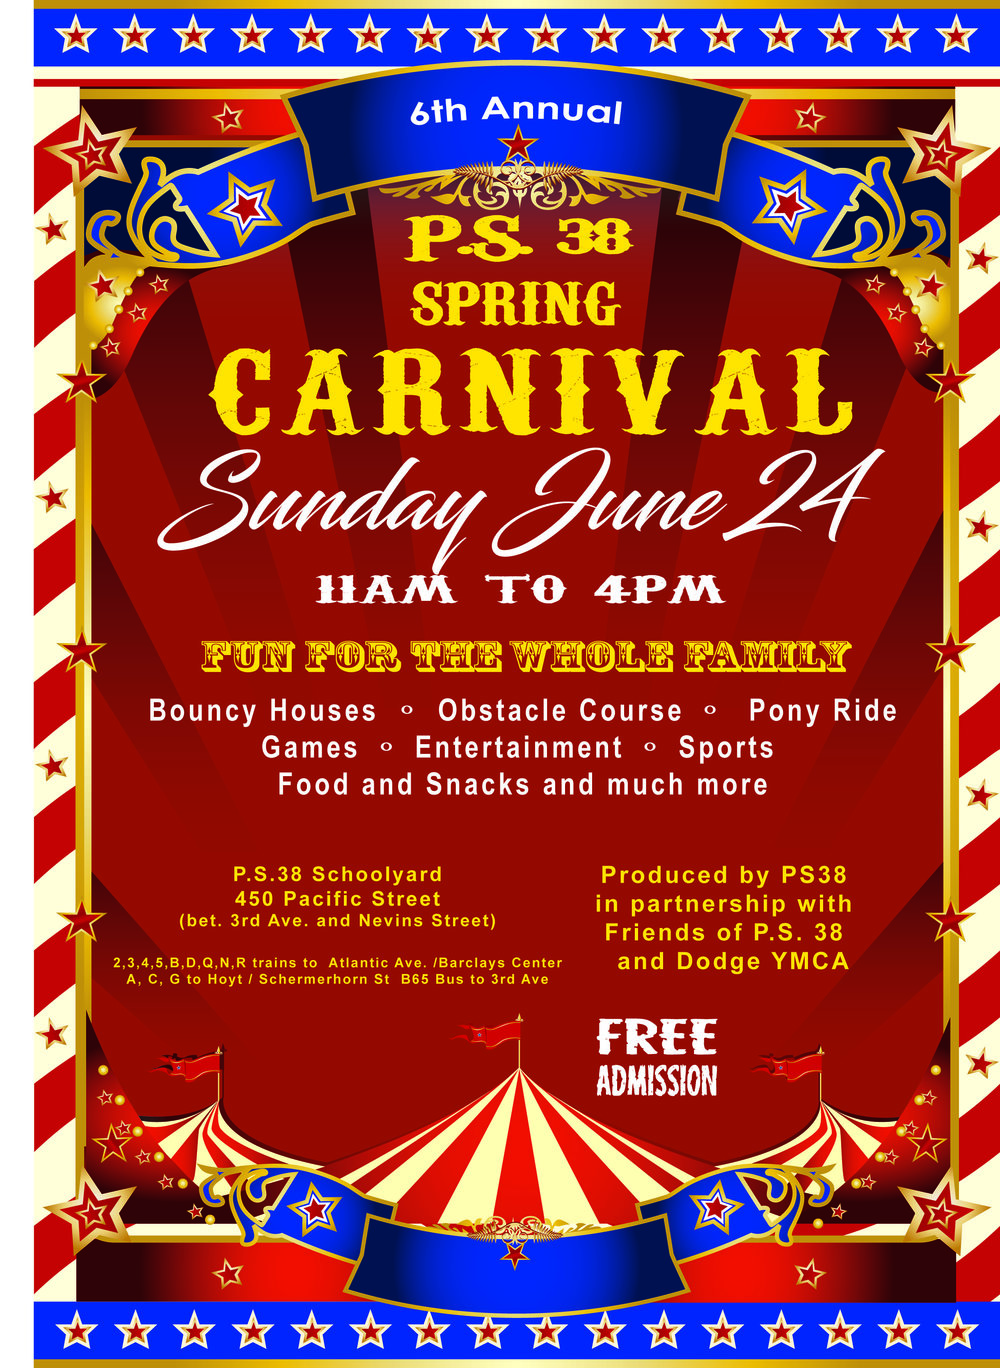 Spring red carnival 6th anniversary 24.jpg